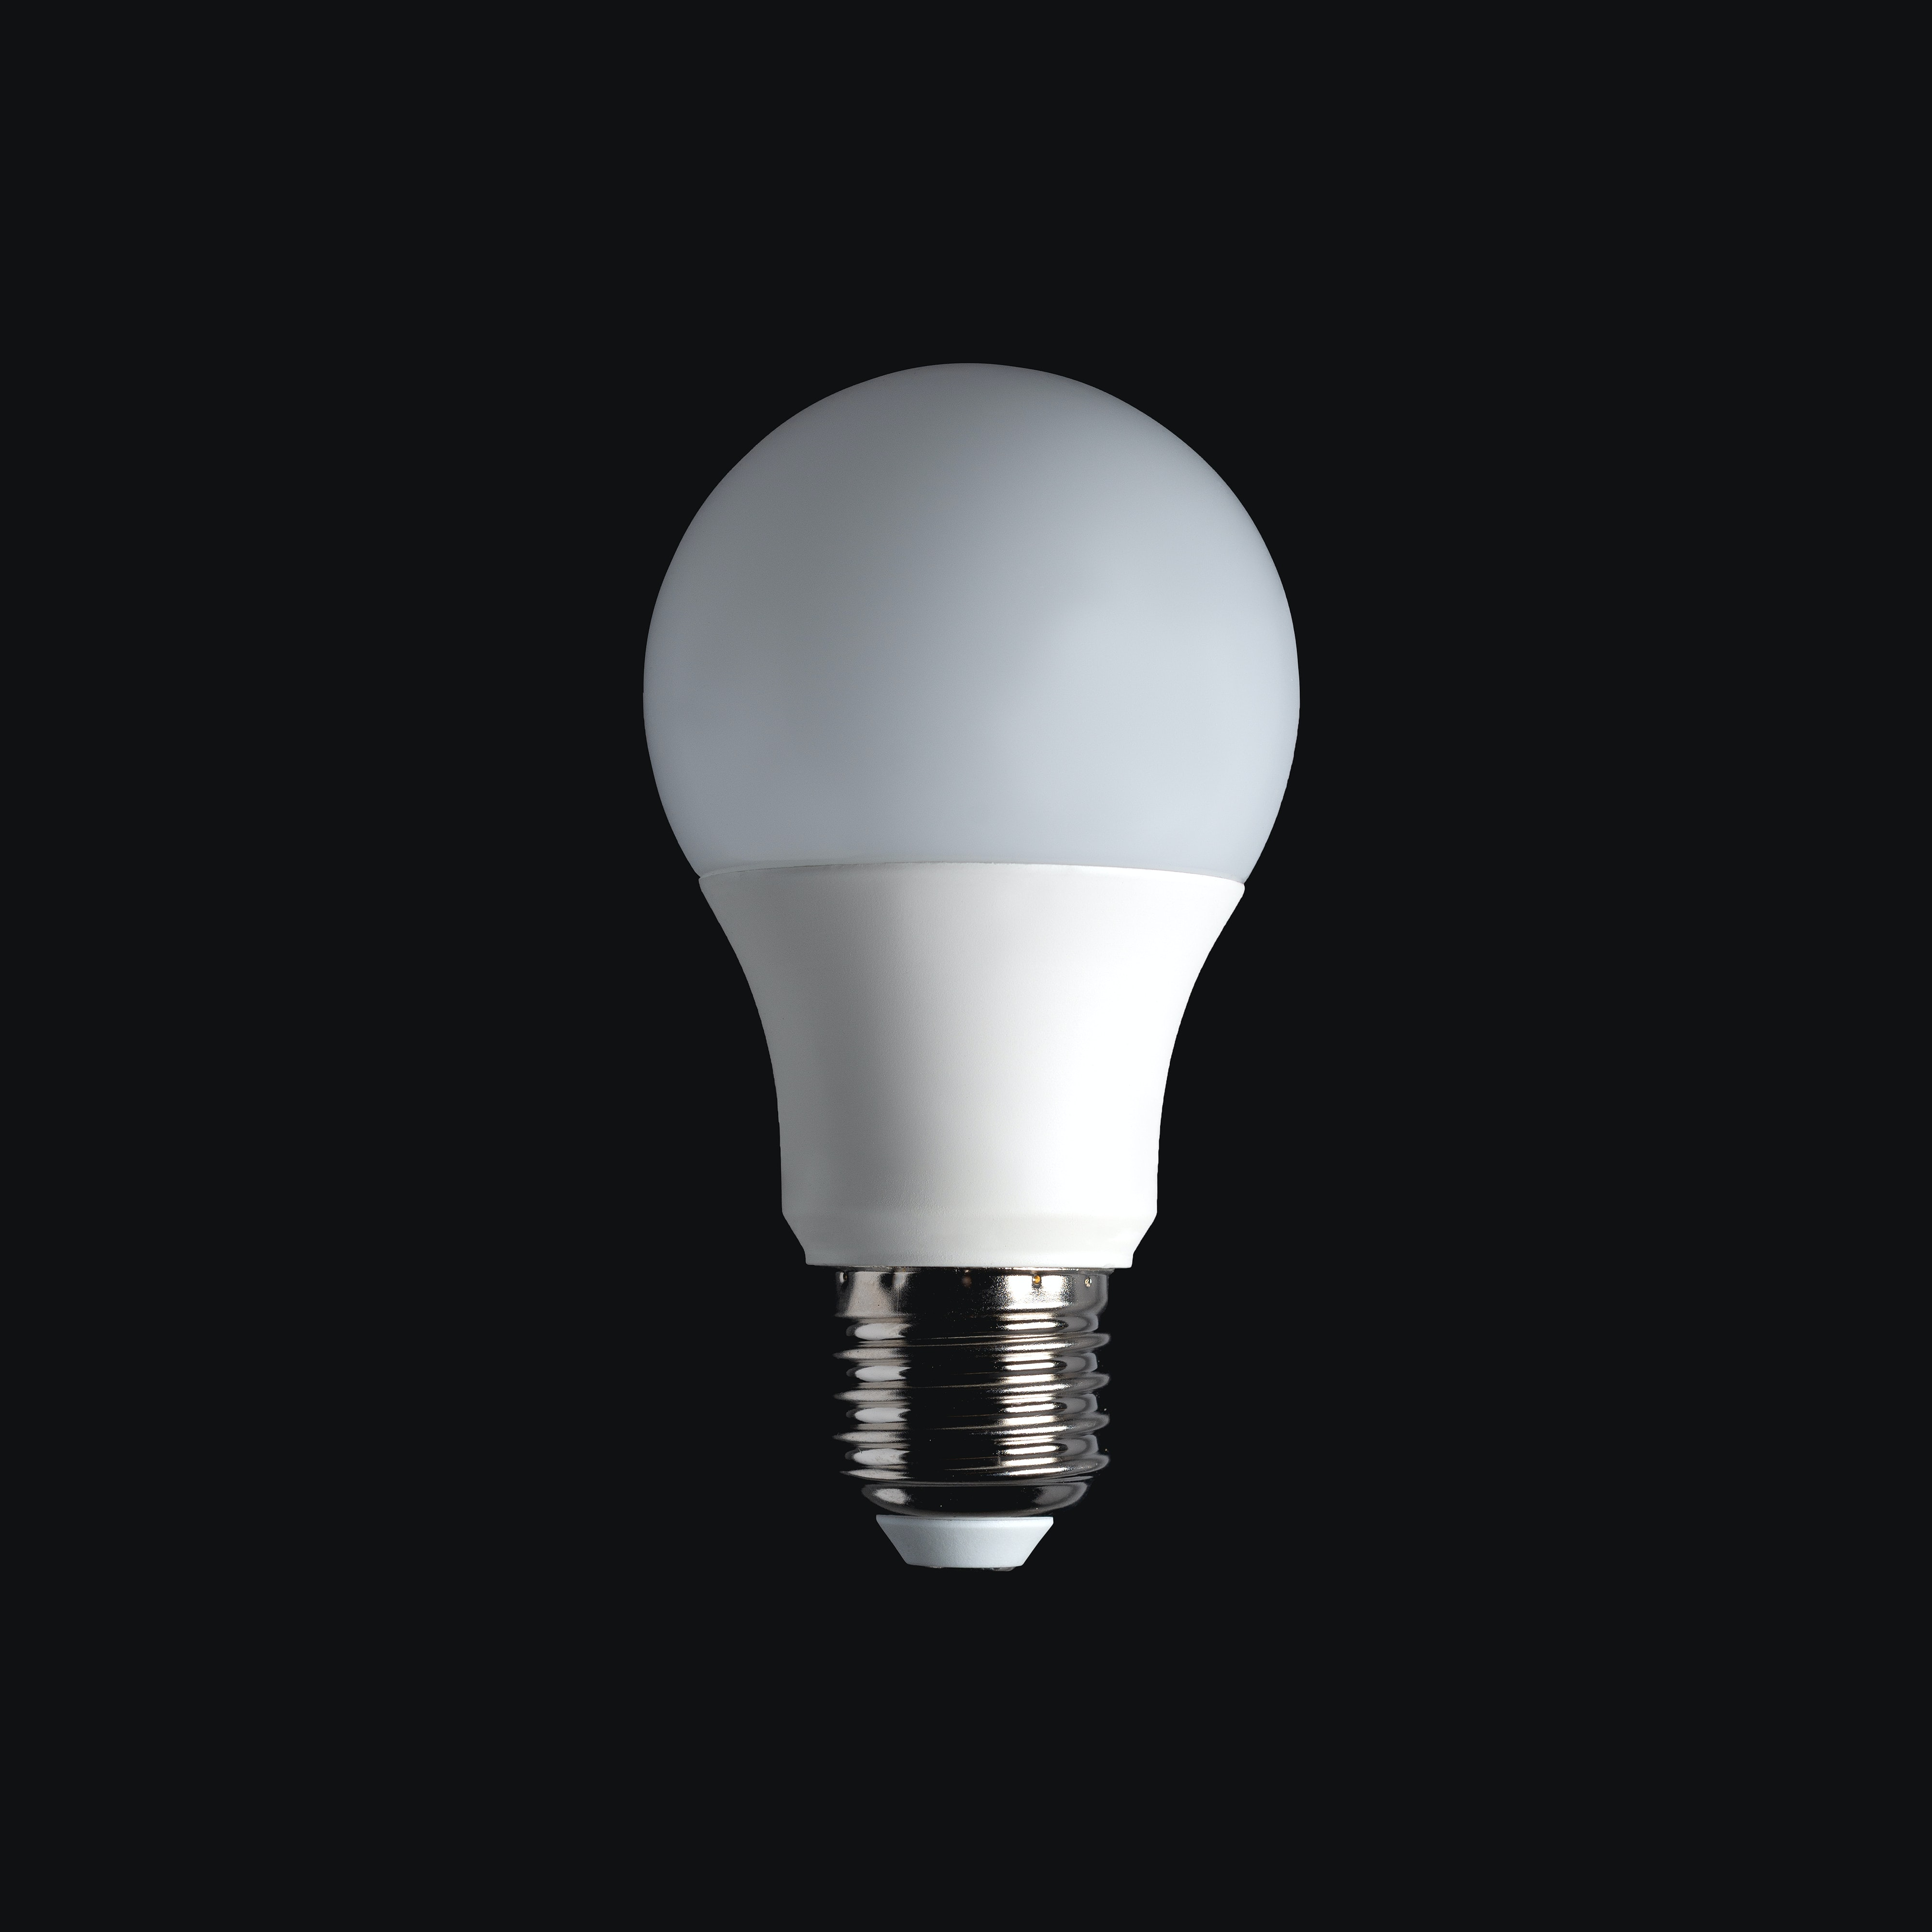 How to save money in Brisbane by switching to LED lights?